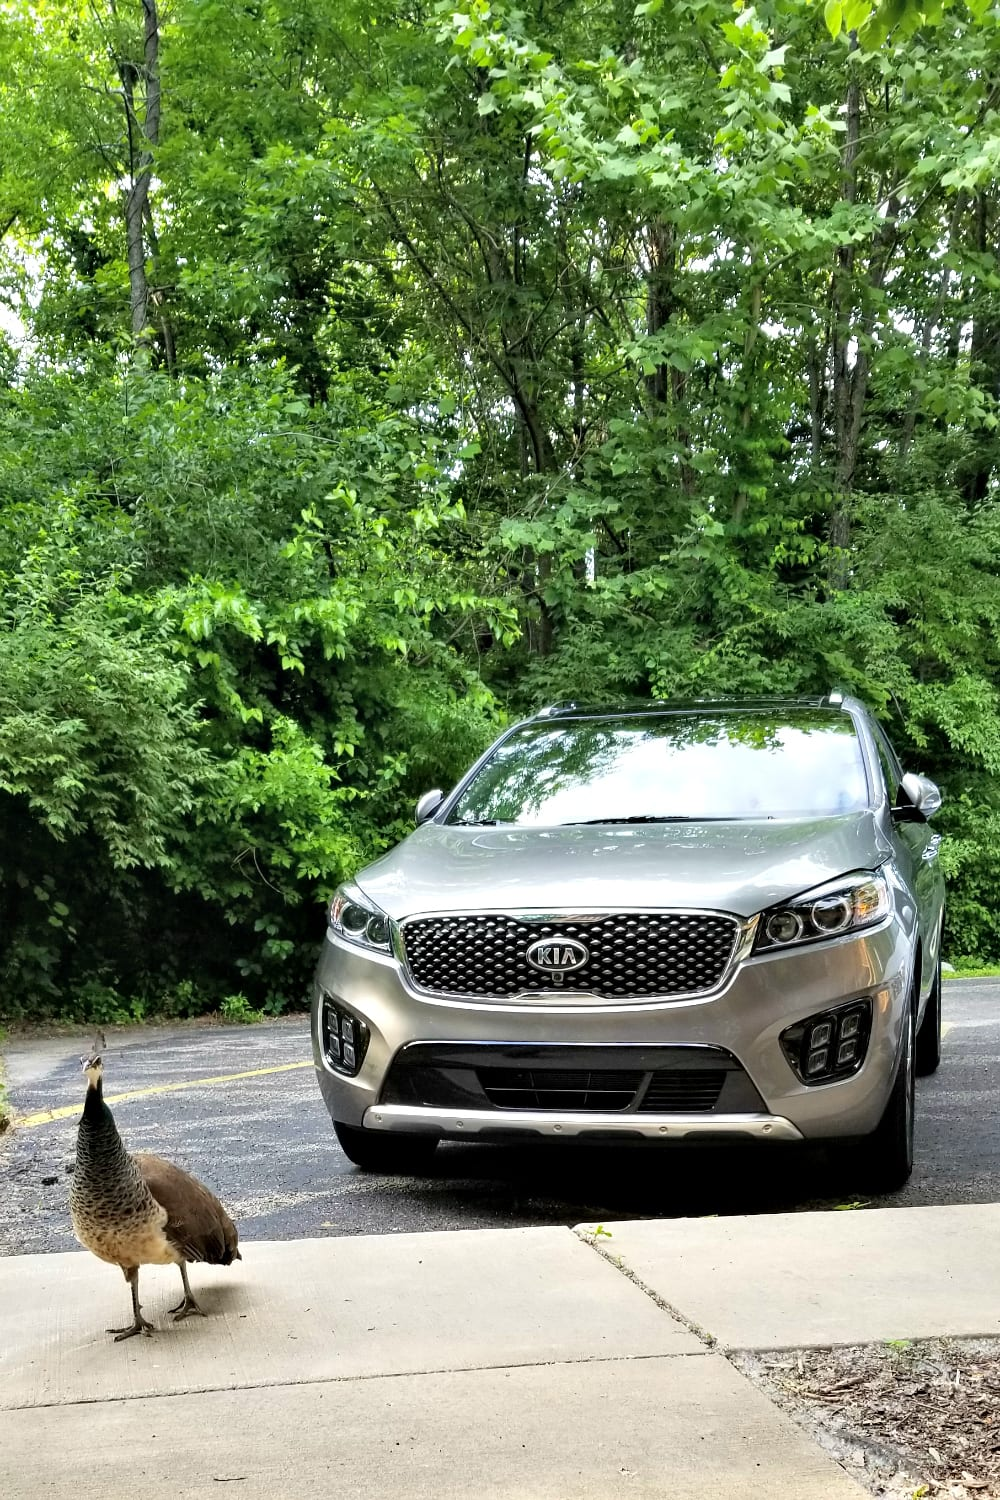 17 Irresistible Features in the 2018 Kia Sorento #cars #vehicles #kia #roadtrip